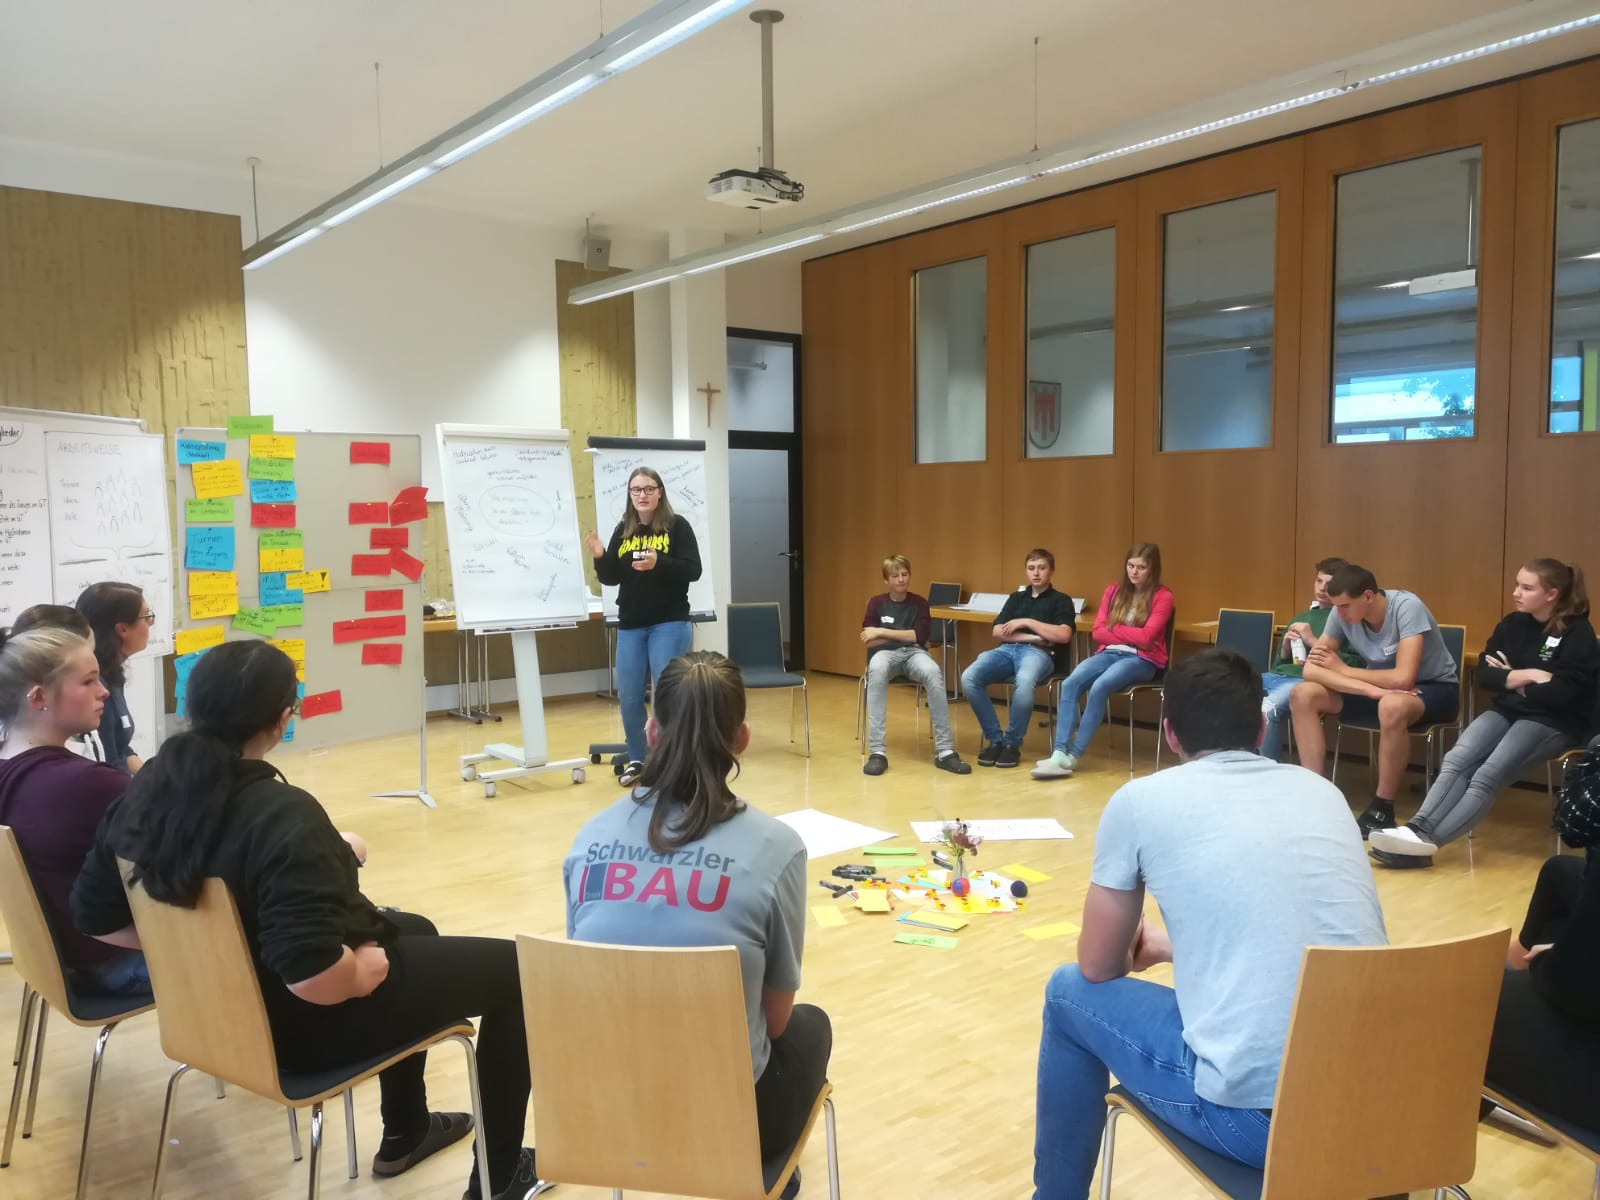 The image is of a classroom with a group of young people sitting in a semi-circle. A person with long hair in a black long sleeve shirt and jeans stands and gestures towards a white board next to her.